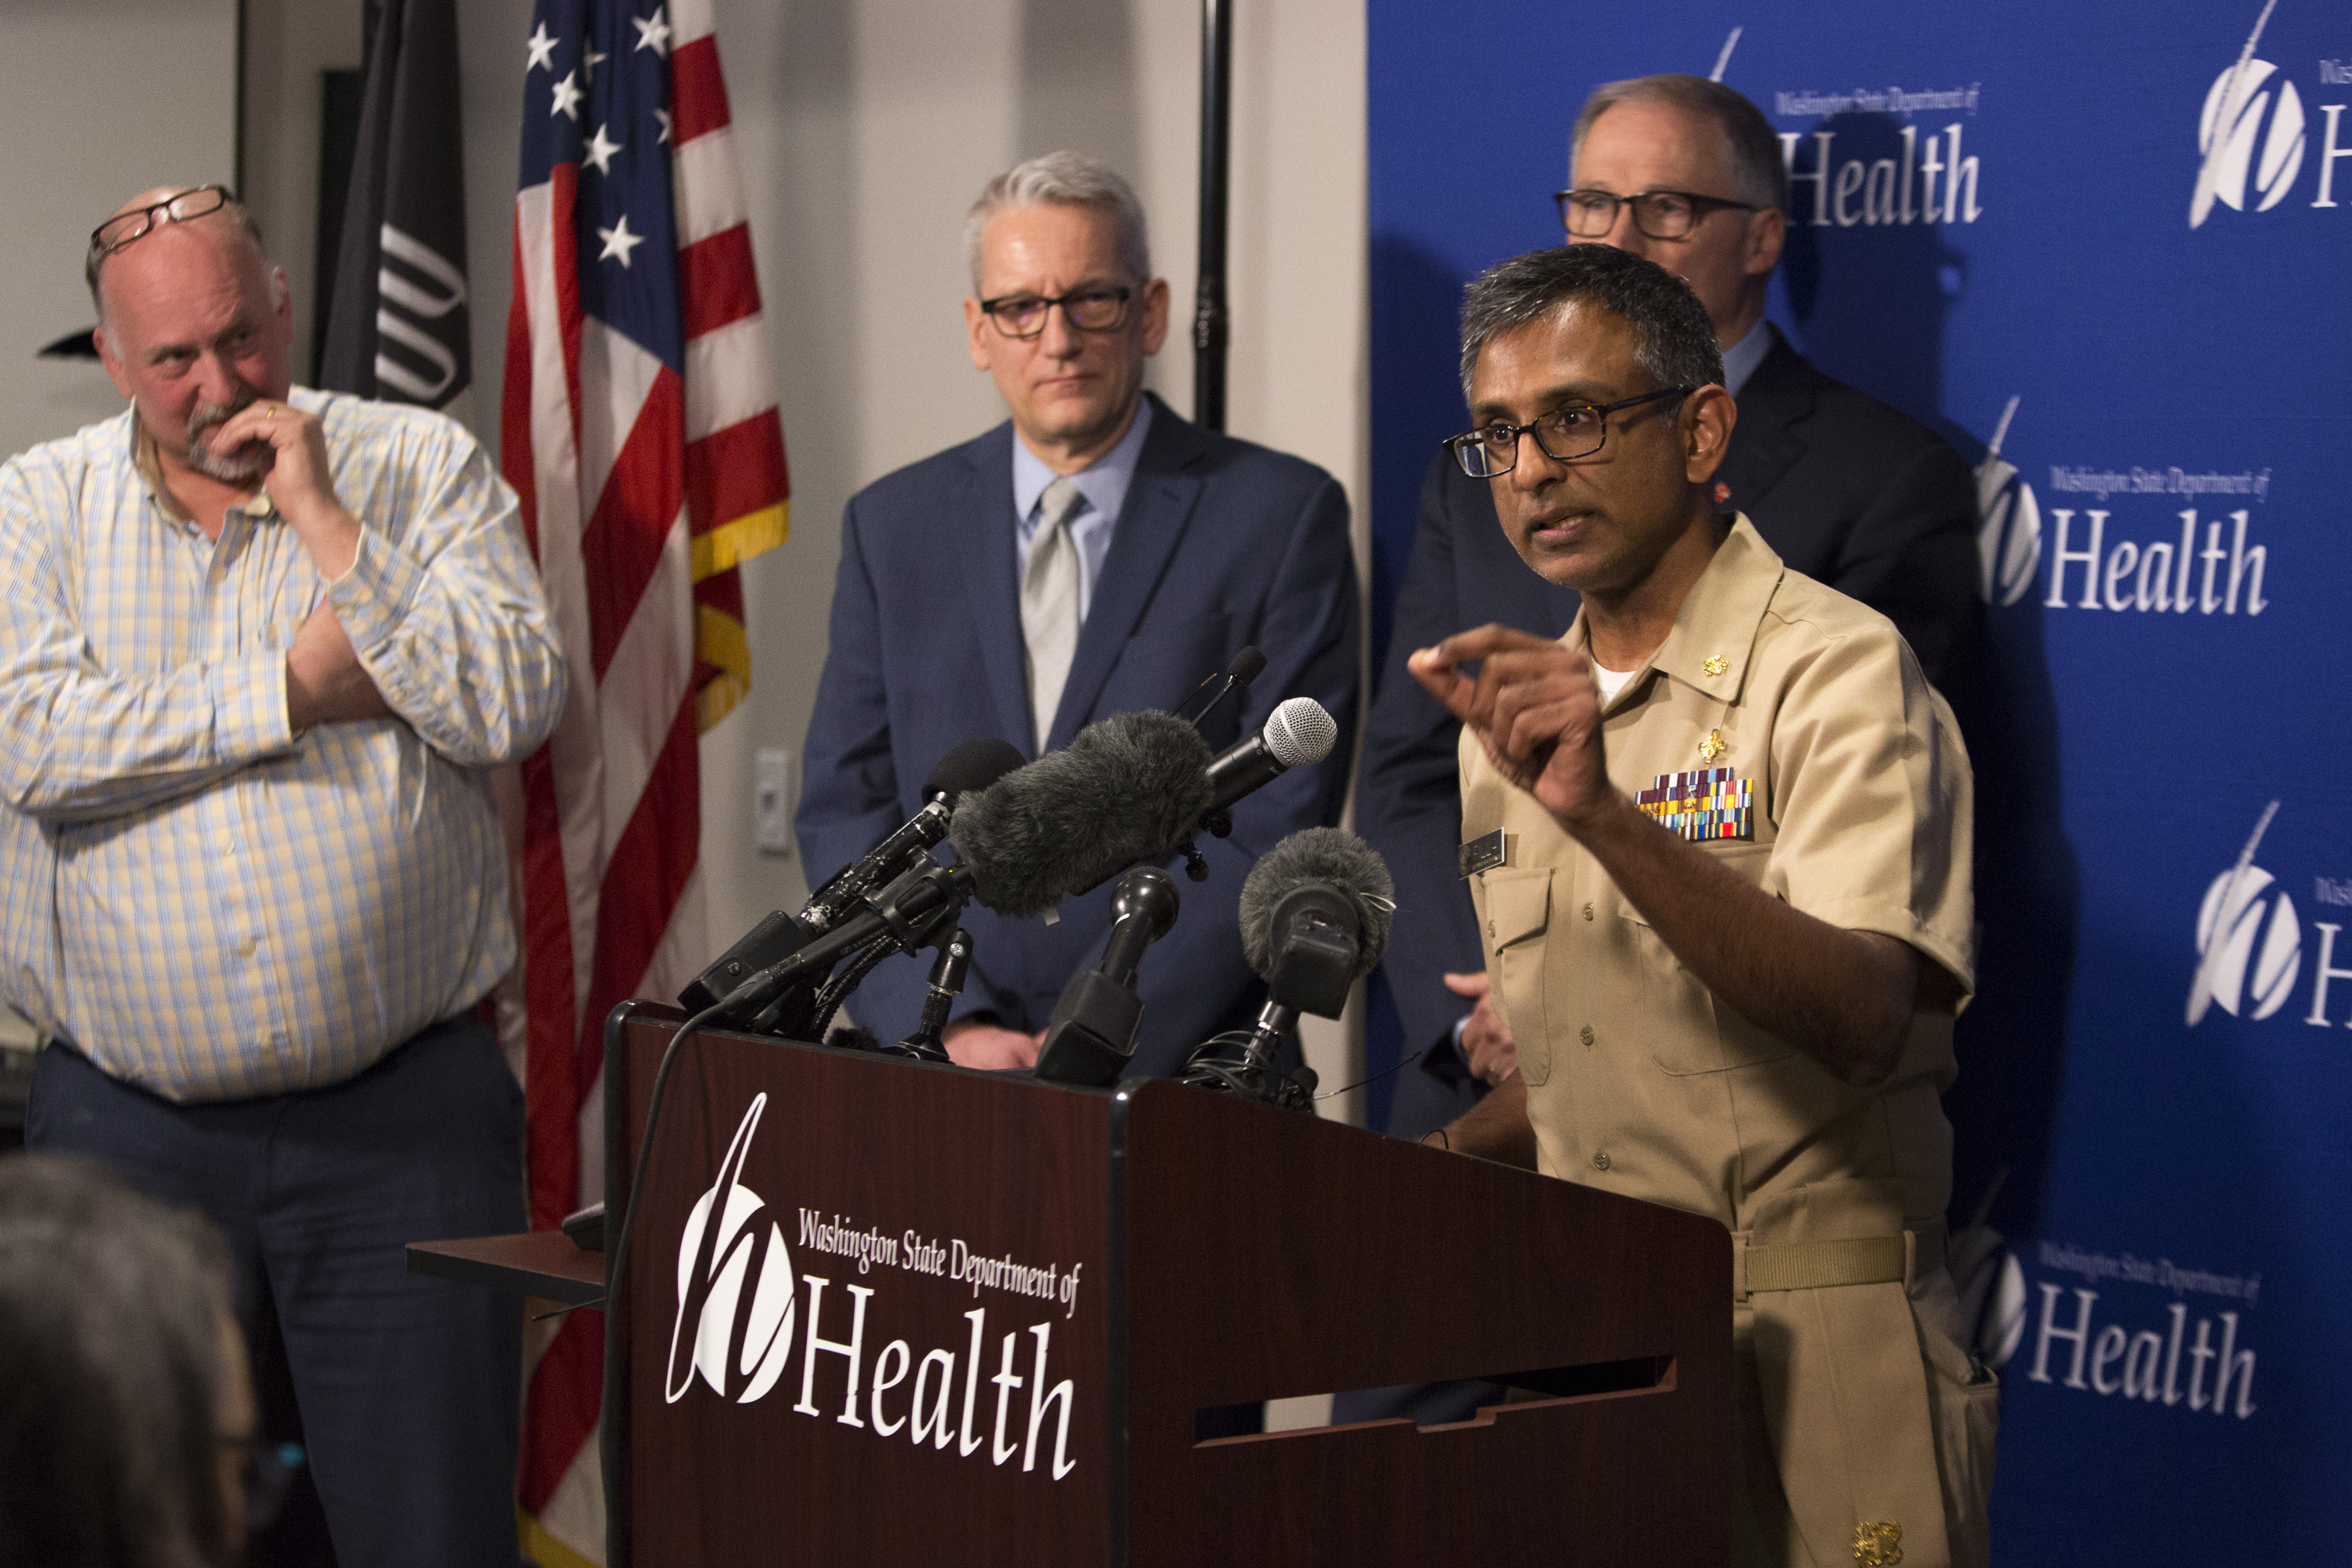 Satish Pillai, a medical officer in the Division of Preparedness and Emerging Infections at the Centers for Disease Control and Prevention, talks about a confirmed case of 2019 novel coronavirus in Washington state during news conference Tuesday.